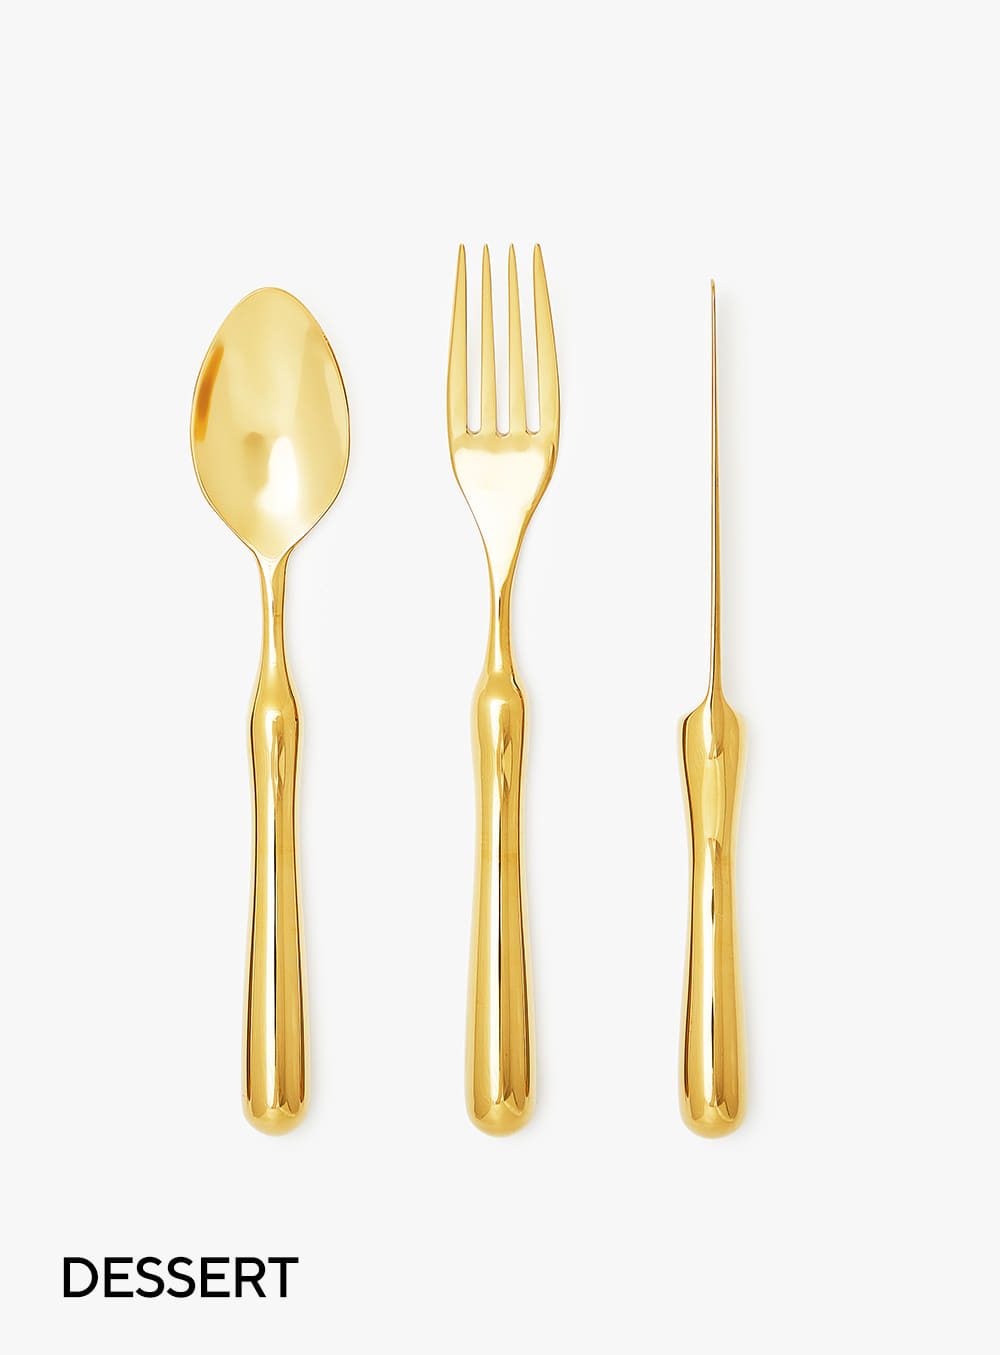 호랑 - Dessert Size Cutlery Set Gold Edition